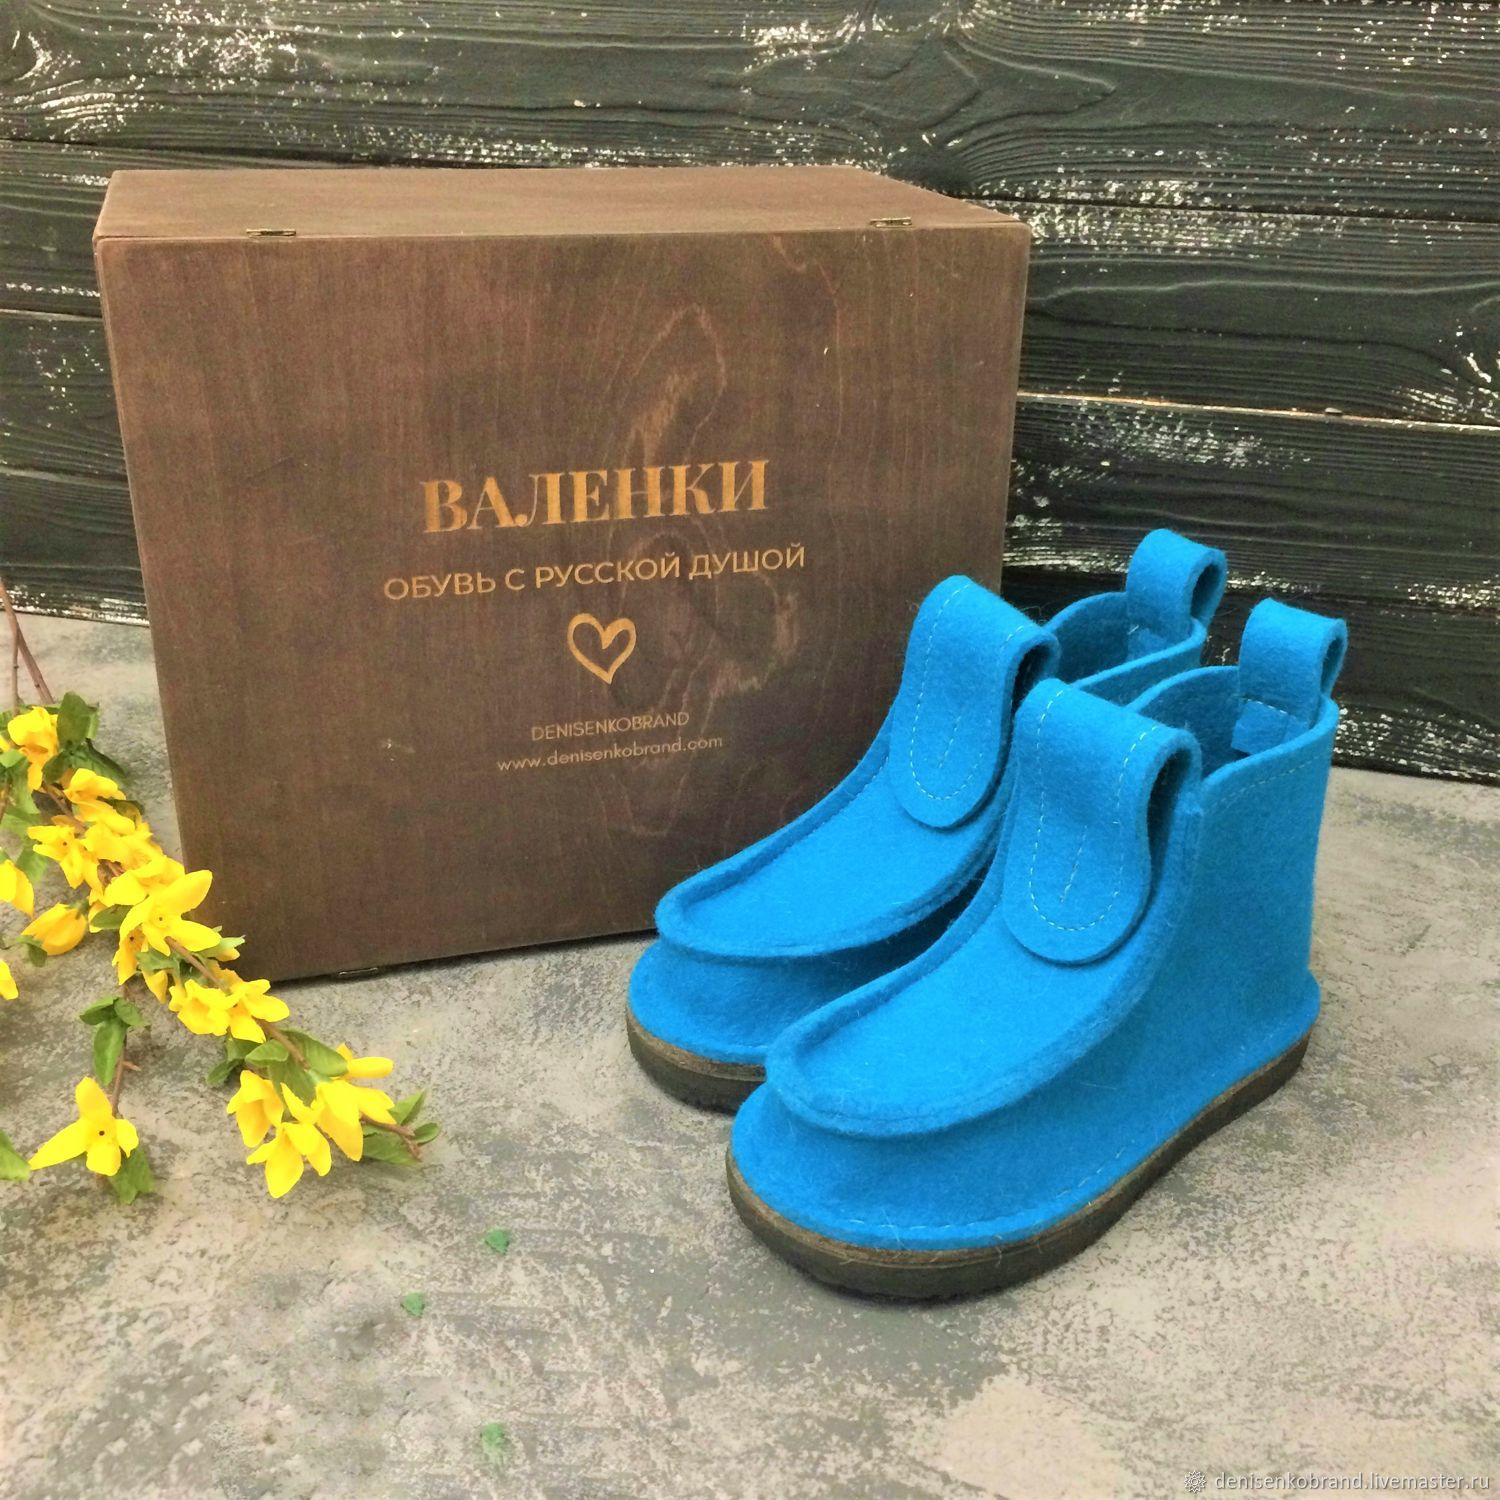 Boots bright turquoise, in a gift box, Felt boots, Moscow,  Фото №1